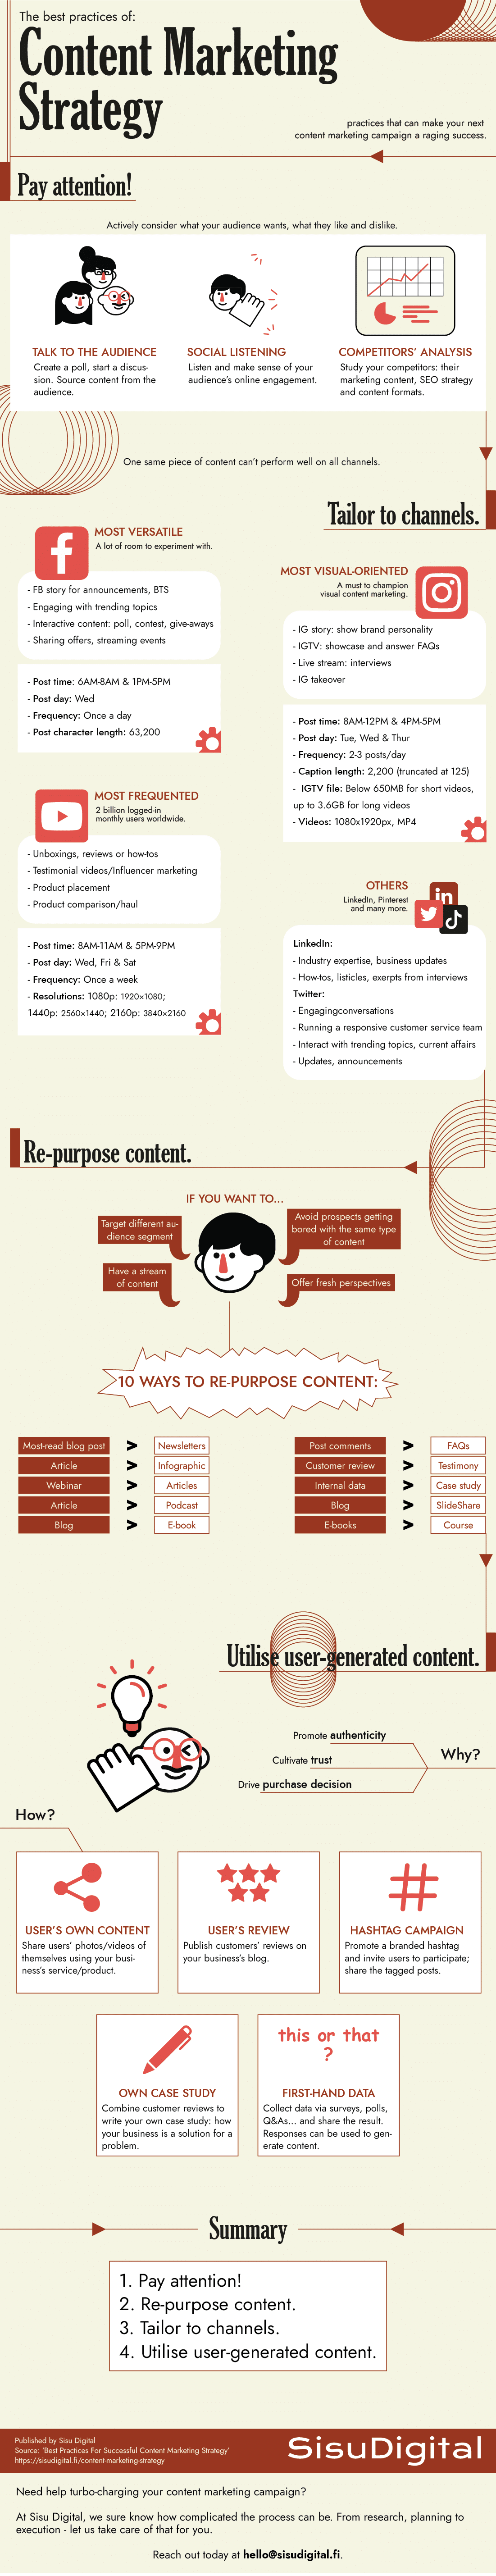 Infographic-Content-Marketing-Strategy-best-practices-Sisu-Digital